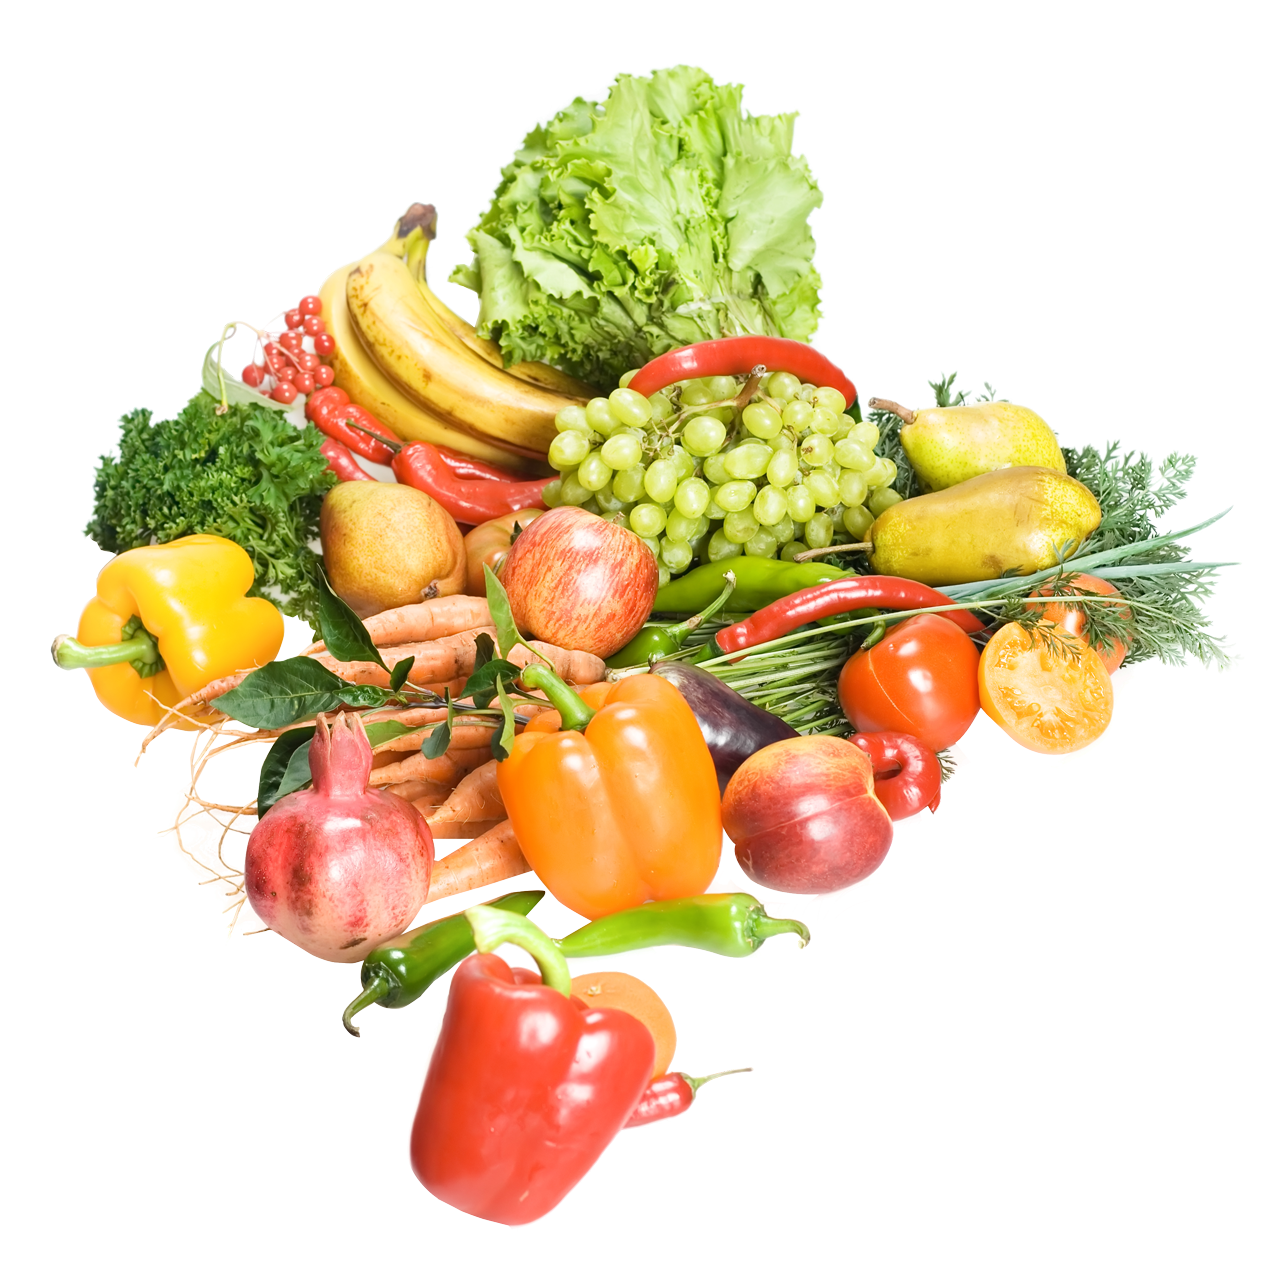 Fruits and veggies png. Vegetables image purepng free